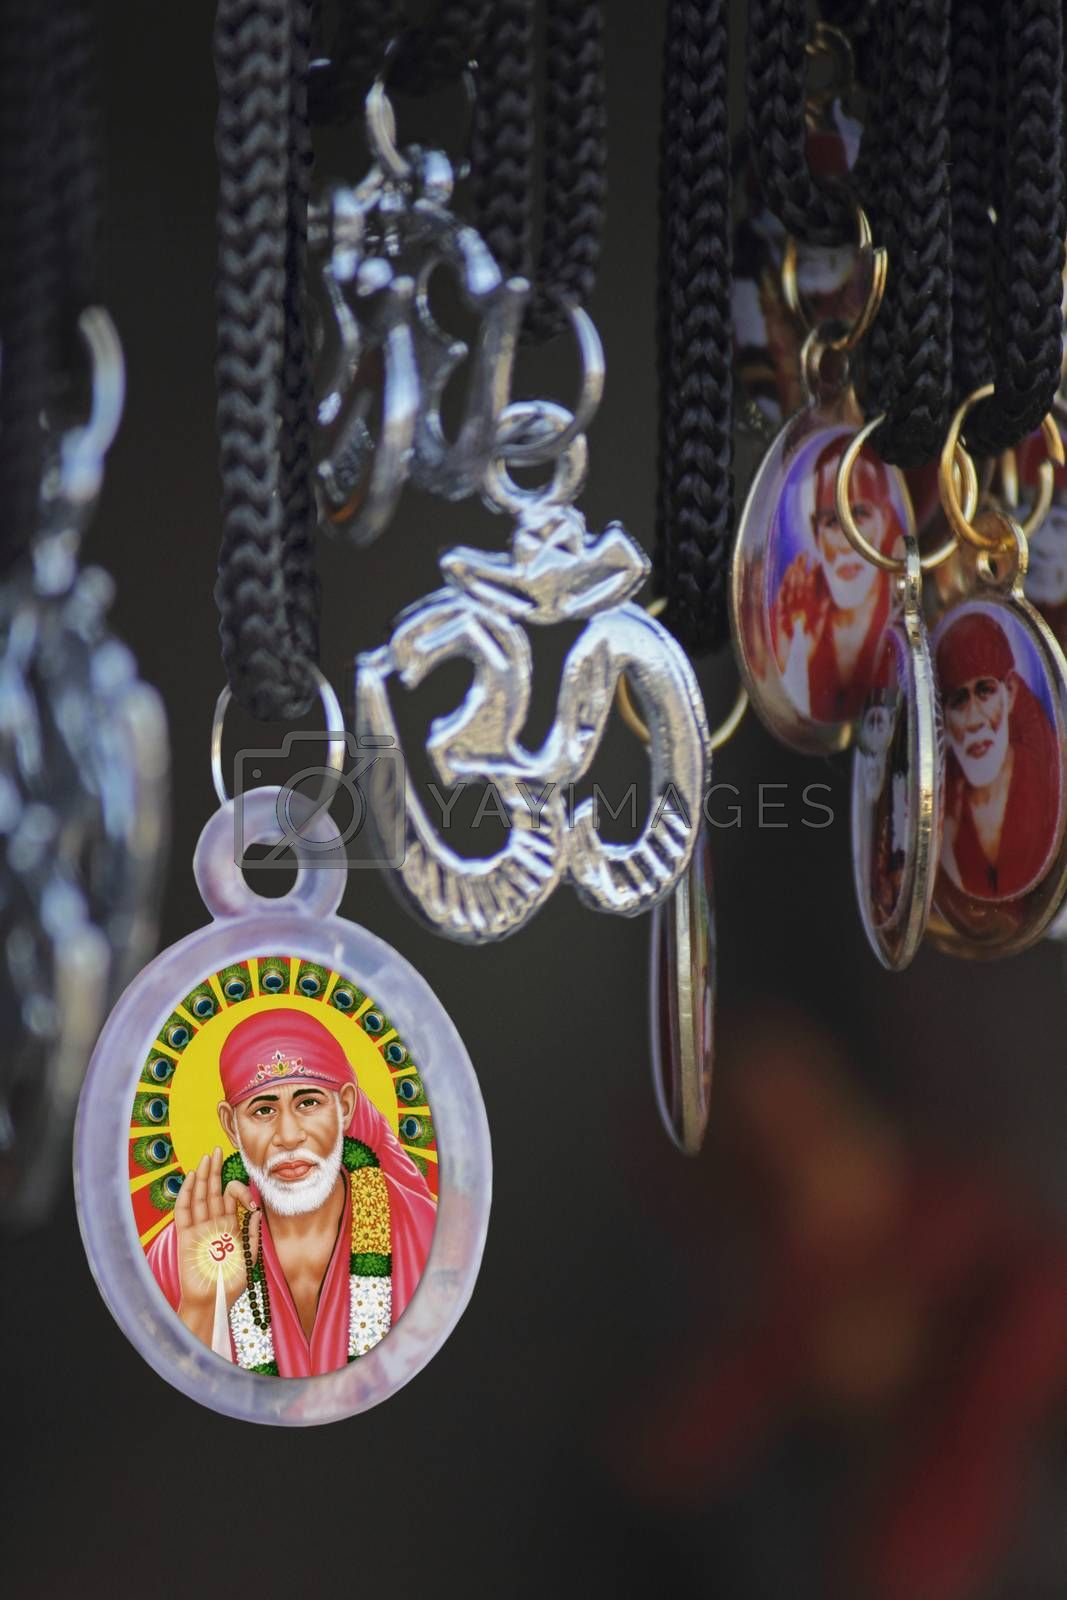 sai baba lockets for sale by yands